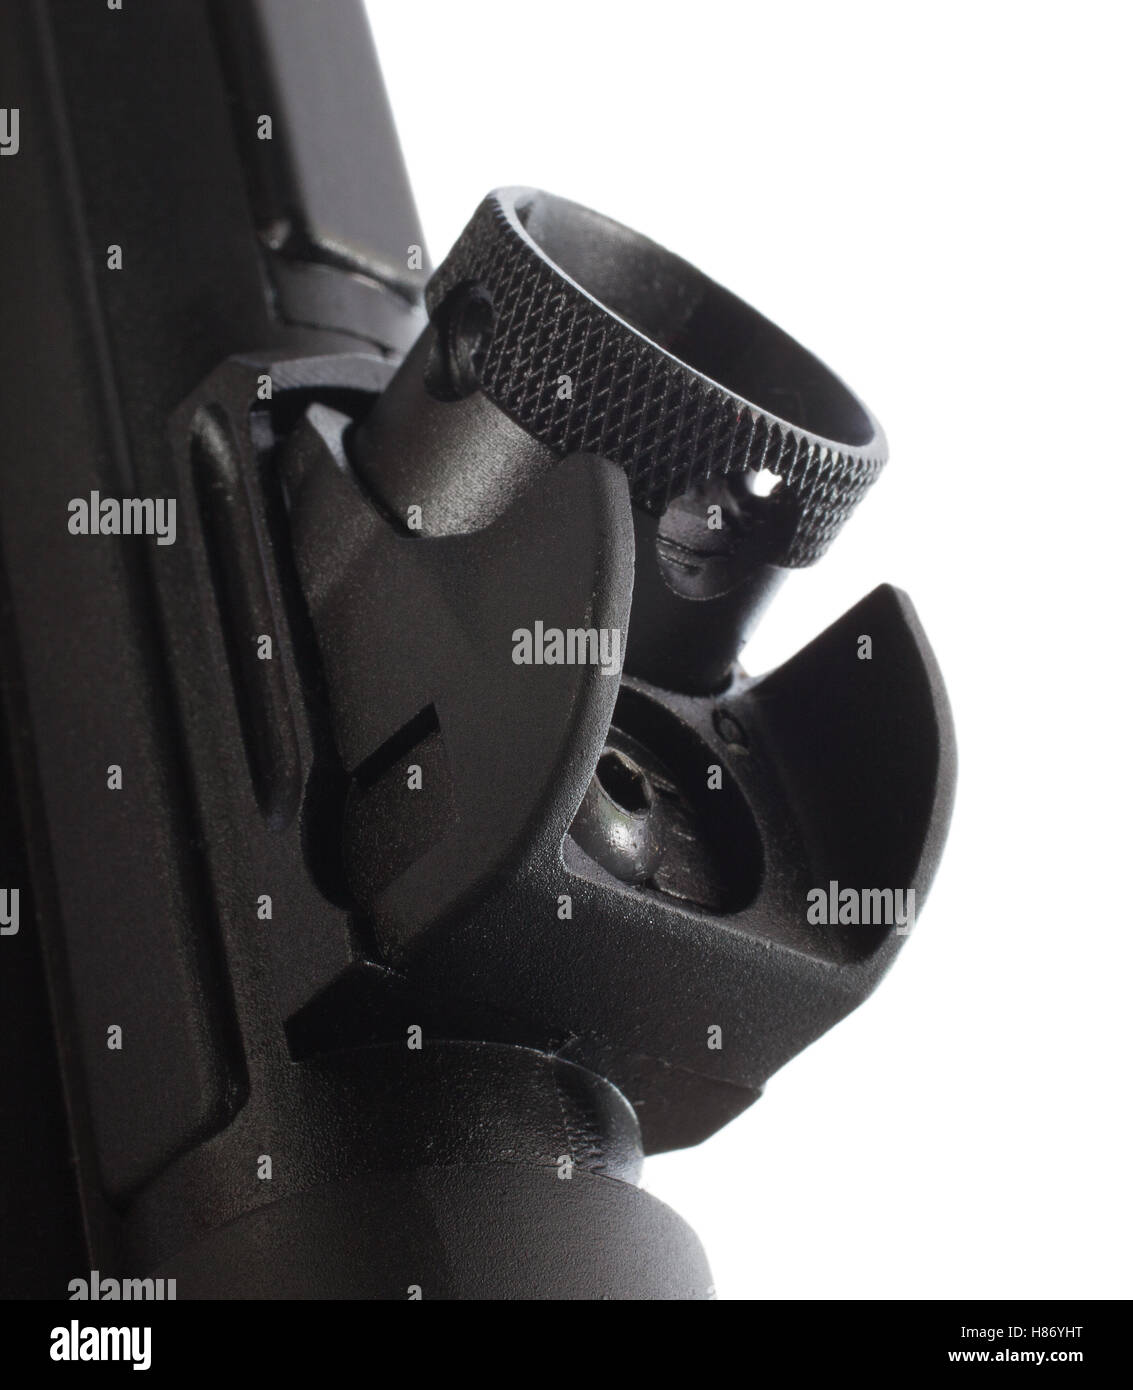 Rear sight on an assault rifle that rotates - Stock Image